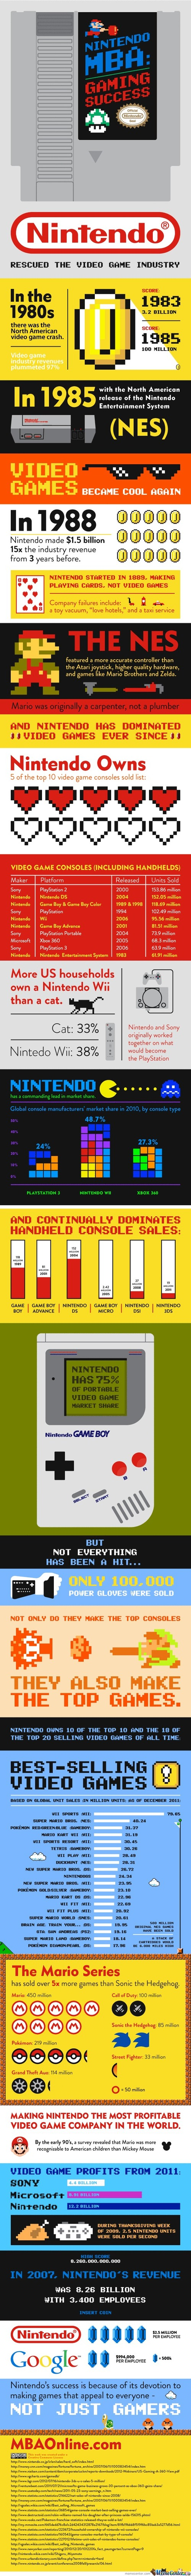 The Rise Of Nintendo(Long Ver.)